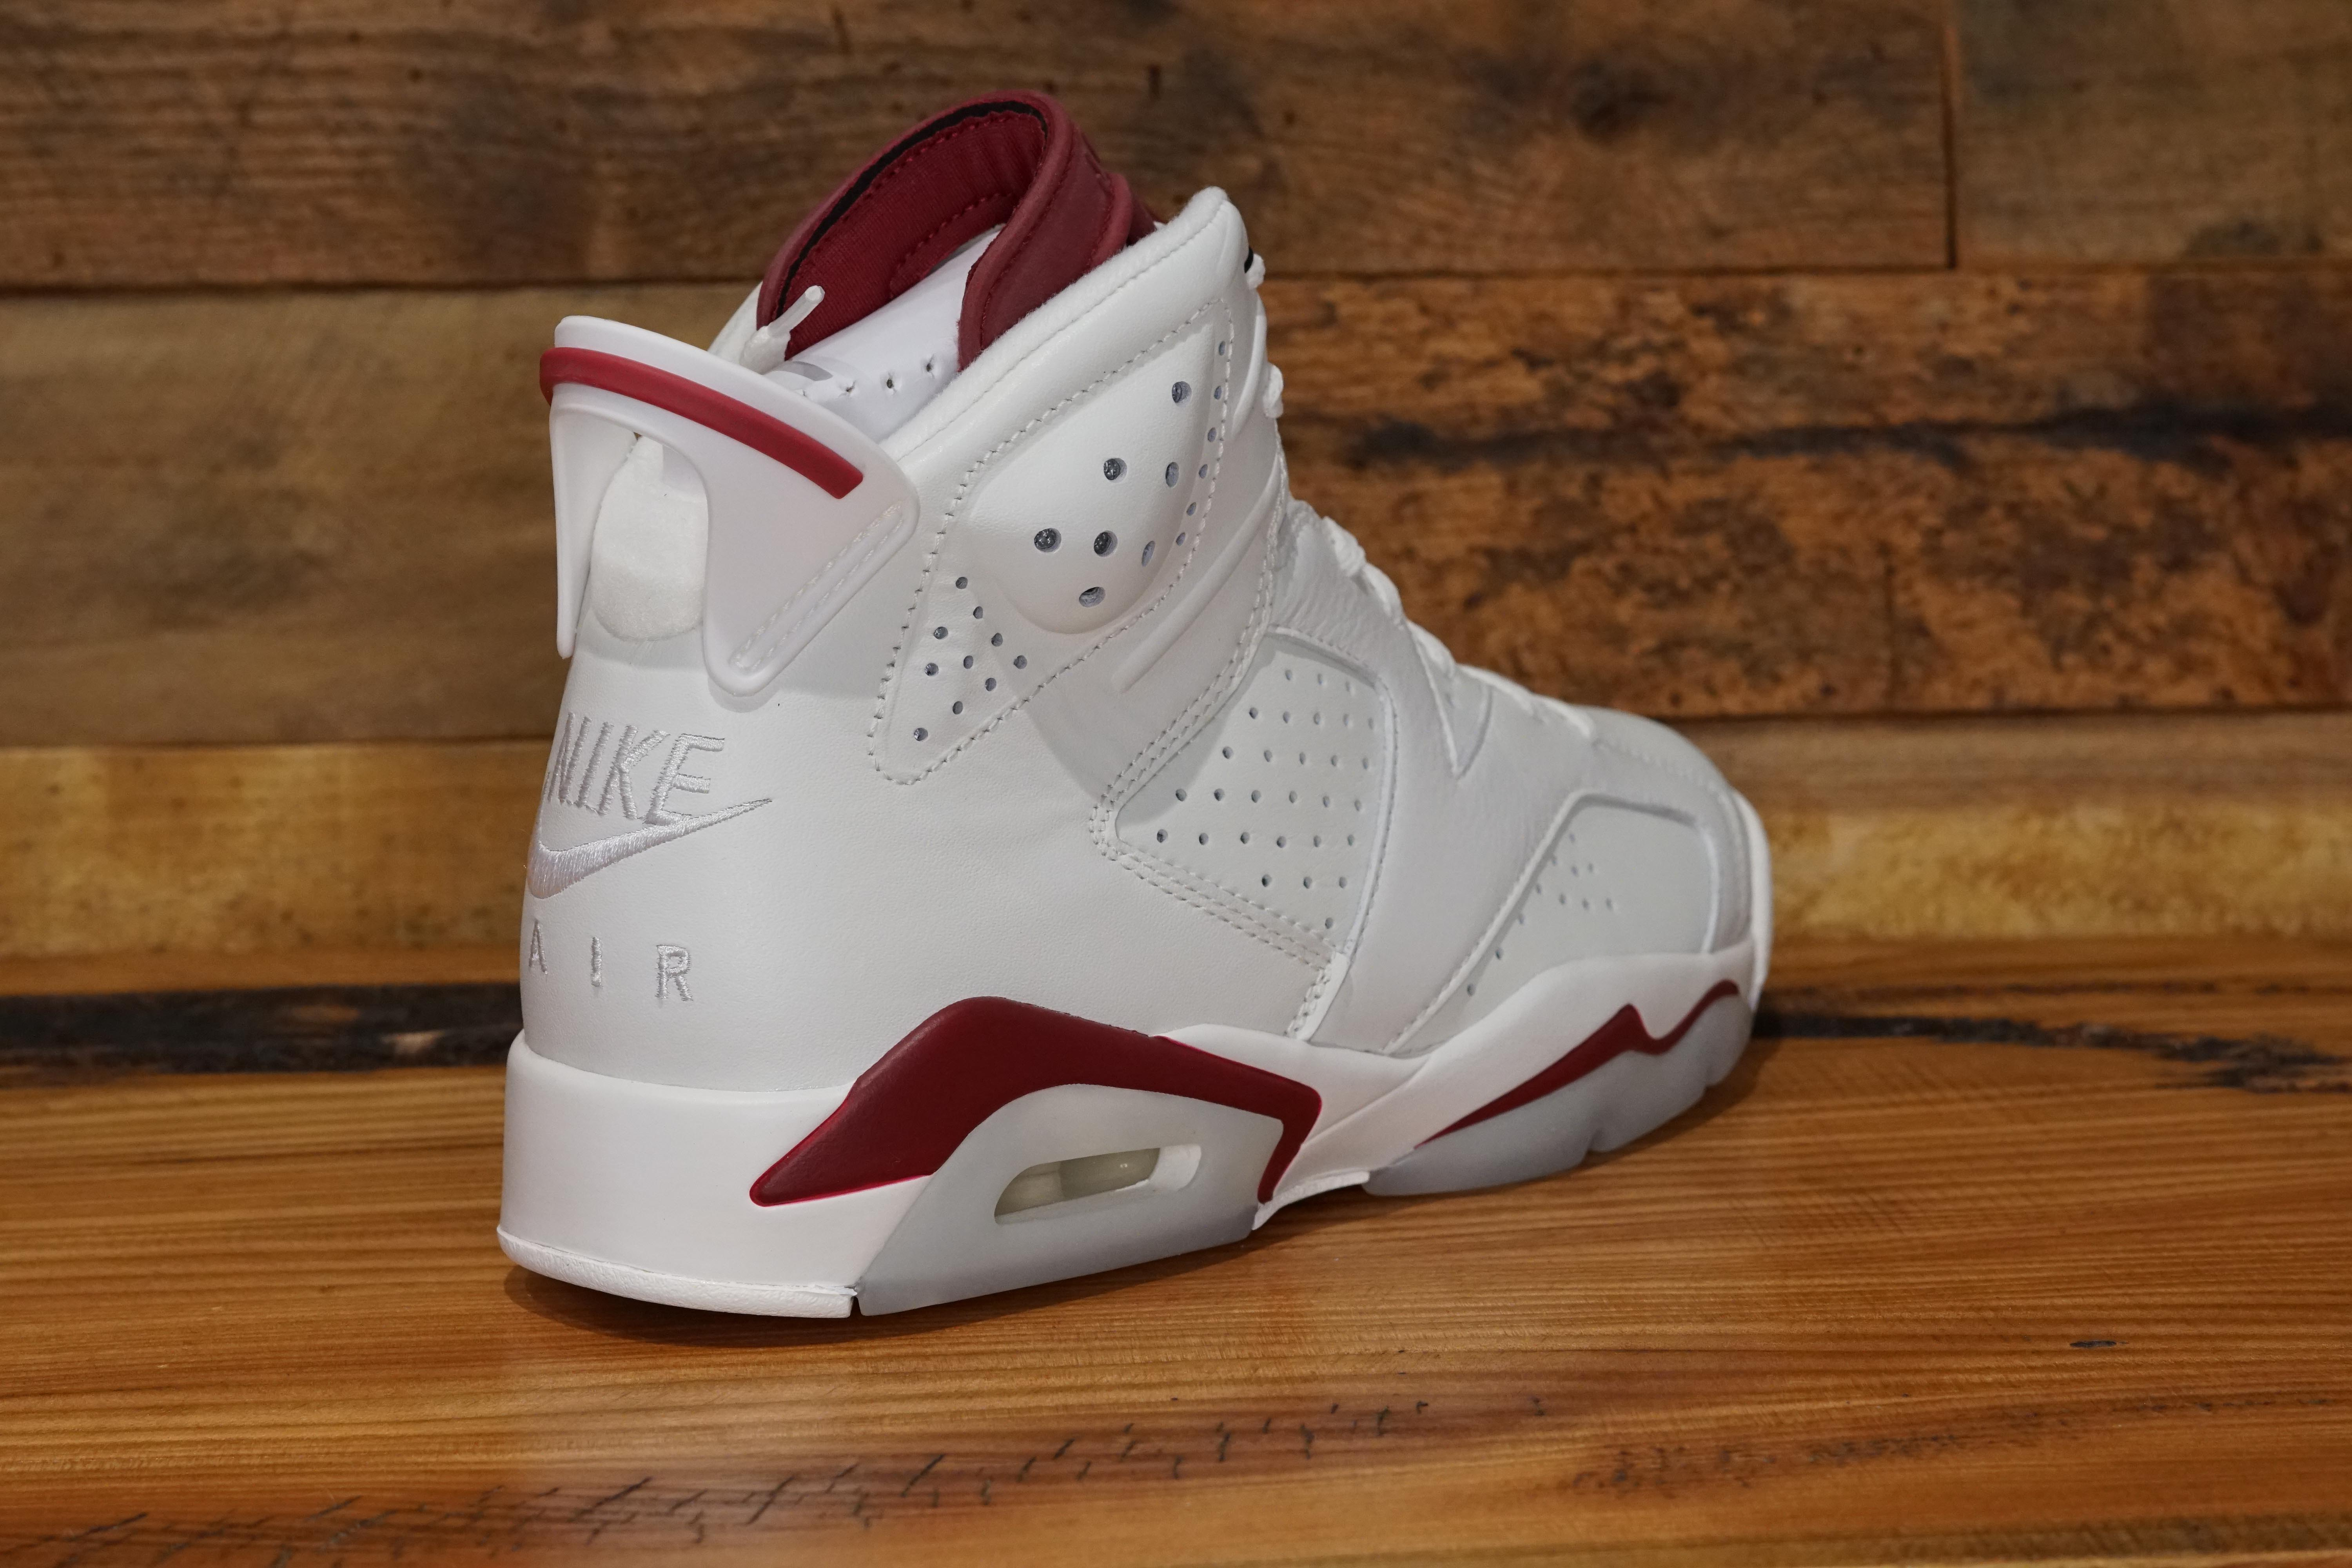 Air Jordan 6 Marron 10 50 pas cher Finishline RVMbe53e6